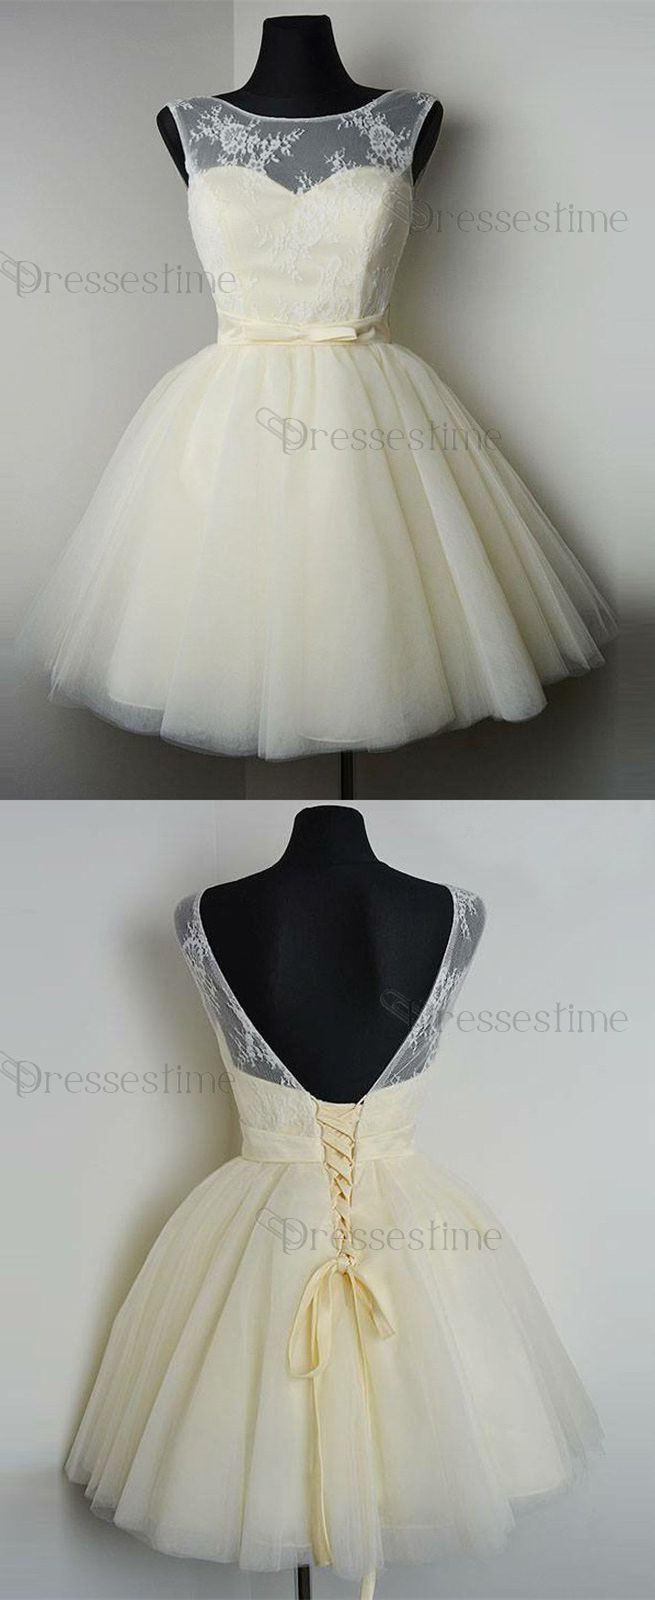 Cute white homecoming gowns, chic tutu fashion dresses, teen fashion, fall homecoming party dresses.